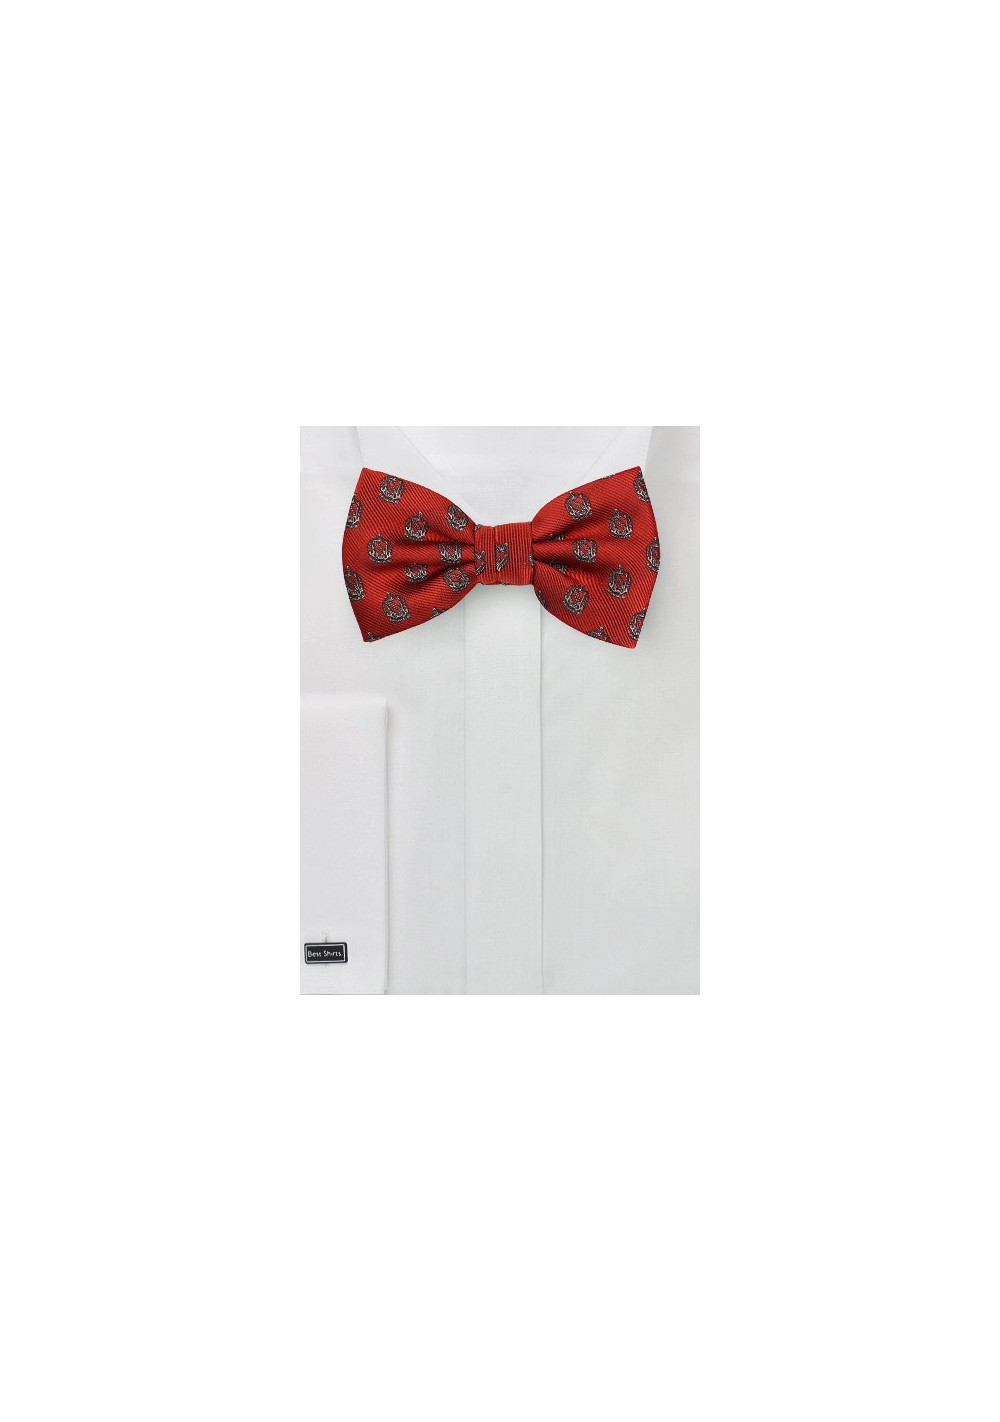 TKE Fraternity Crested Bow Tie